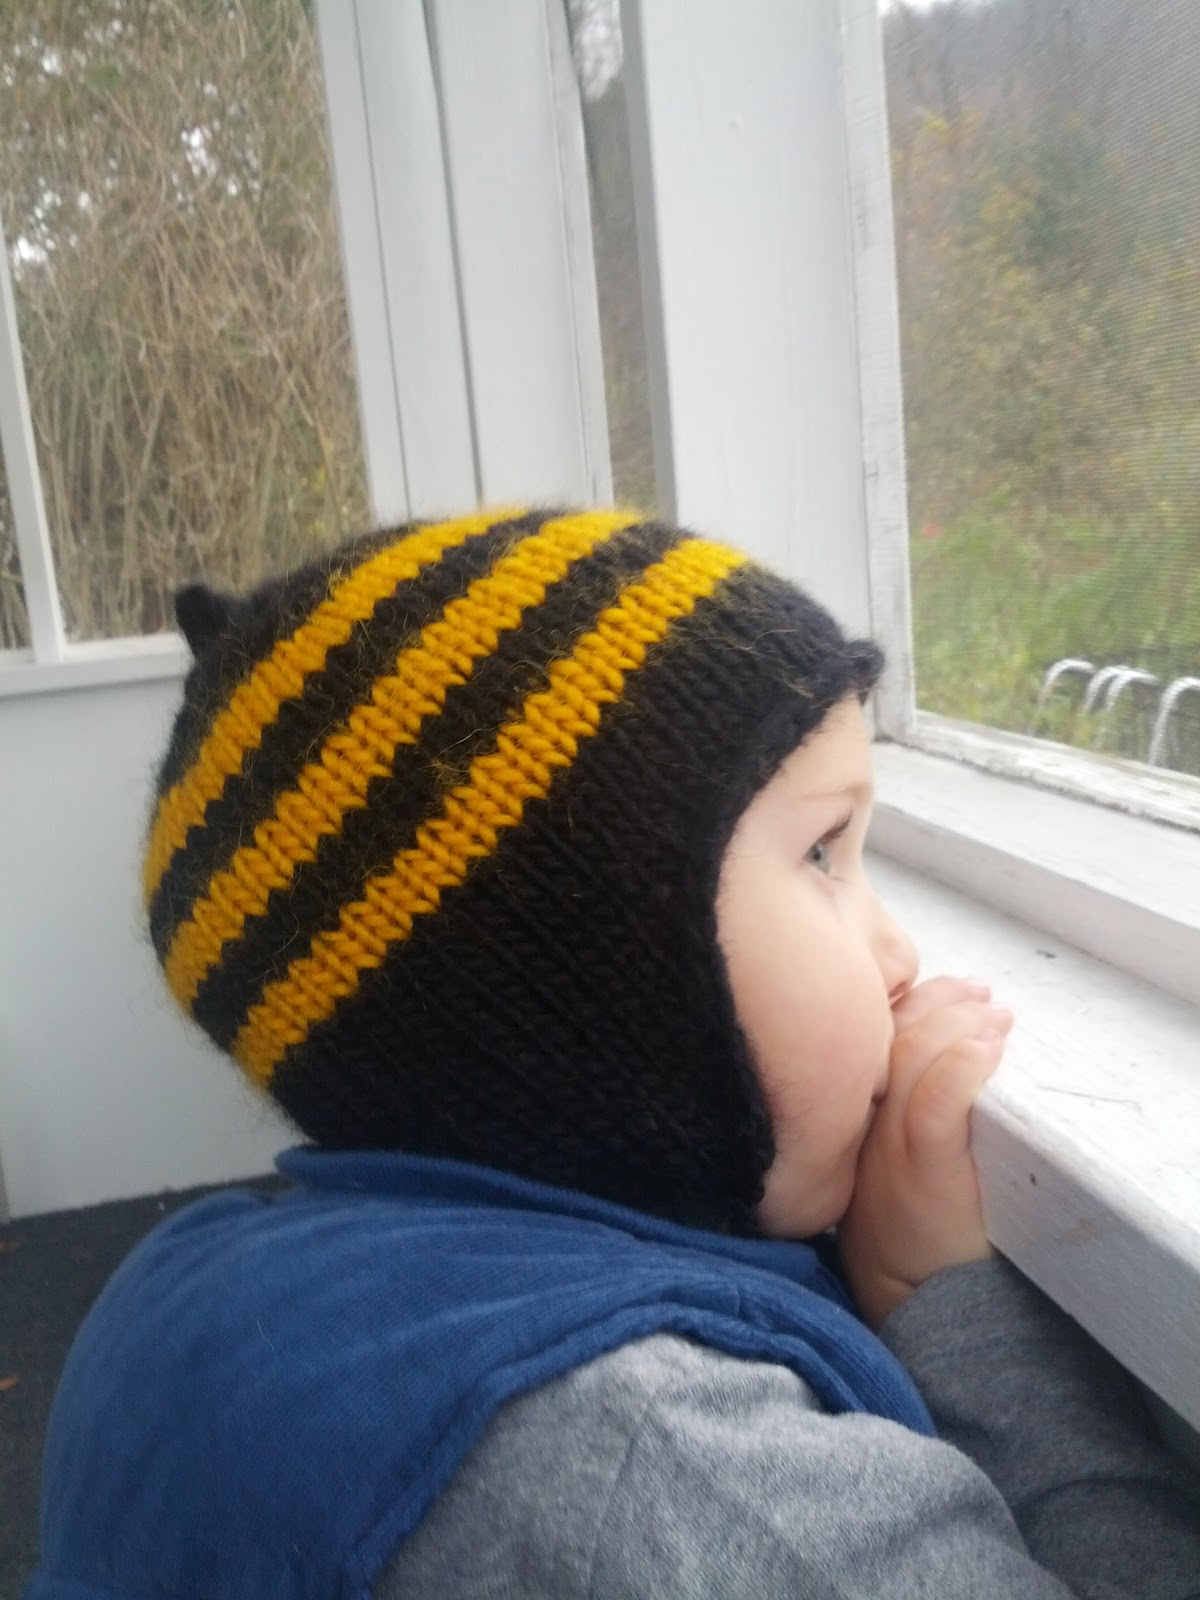 Bumble Bee Knitting Pattern : Jenna Takes On: Bumble Bee: A Free Knitting Pattern